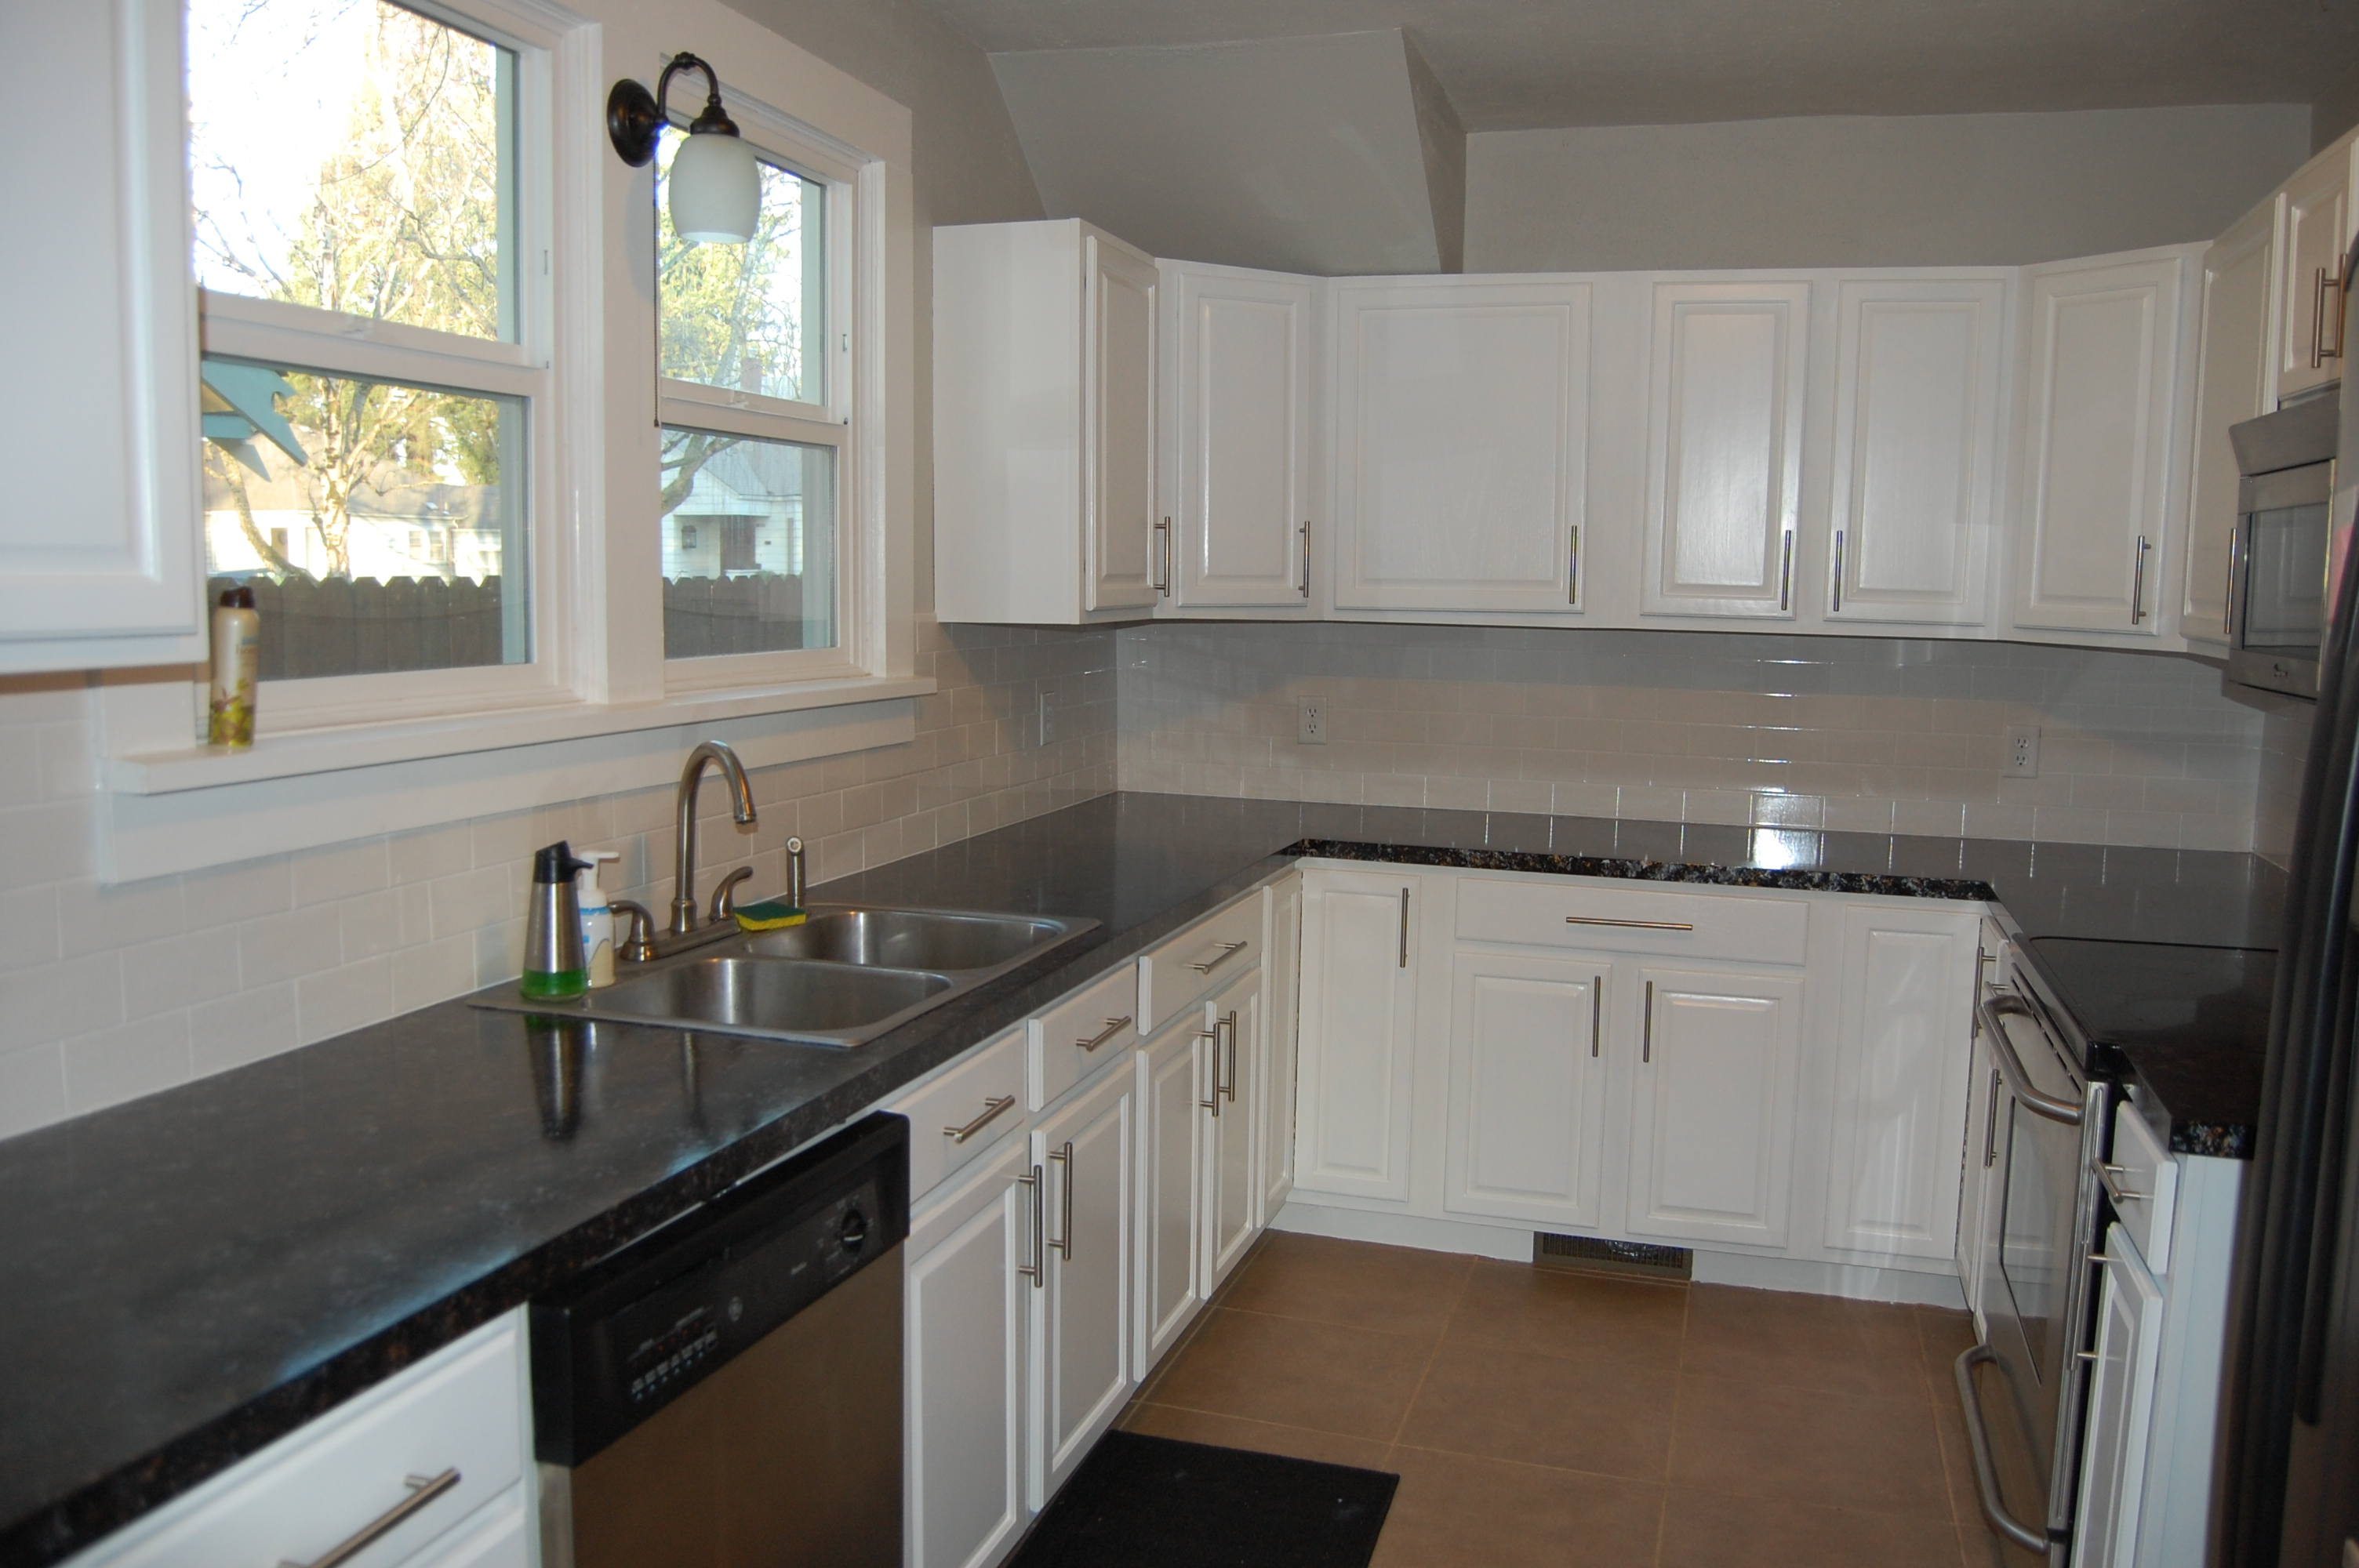 painting kitchen cabinets paint kitchen cabinets white My kitchen